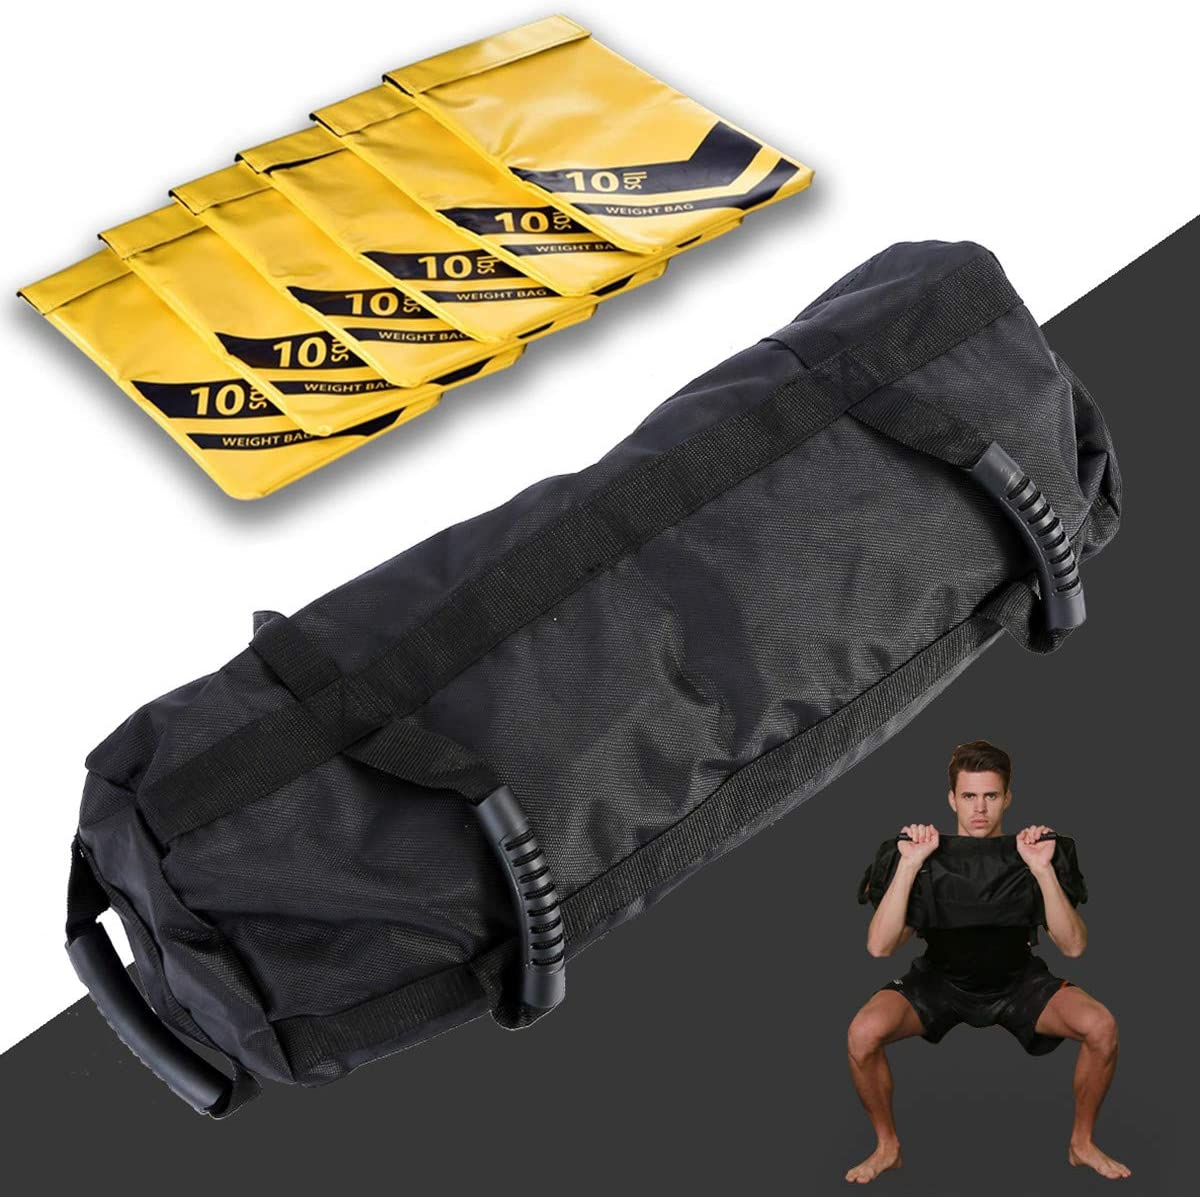 E/ETERMTT Sandbags for Fitness Tactical Training Weight Bags for Exercise and Military Conditioning Sand Not Included Heavy Duty Workout Sandbags with 10 to 60 Lbs Adjustable Filler Bags